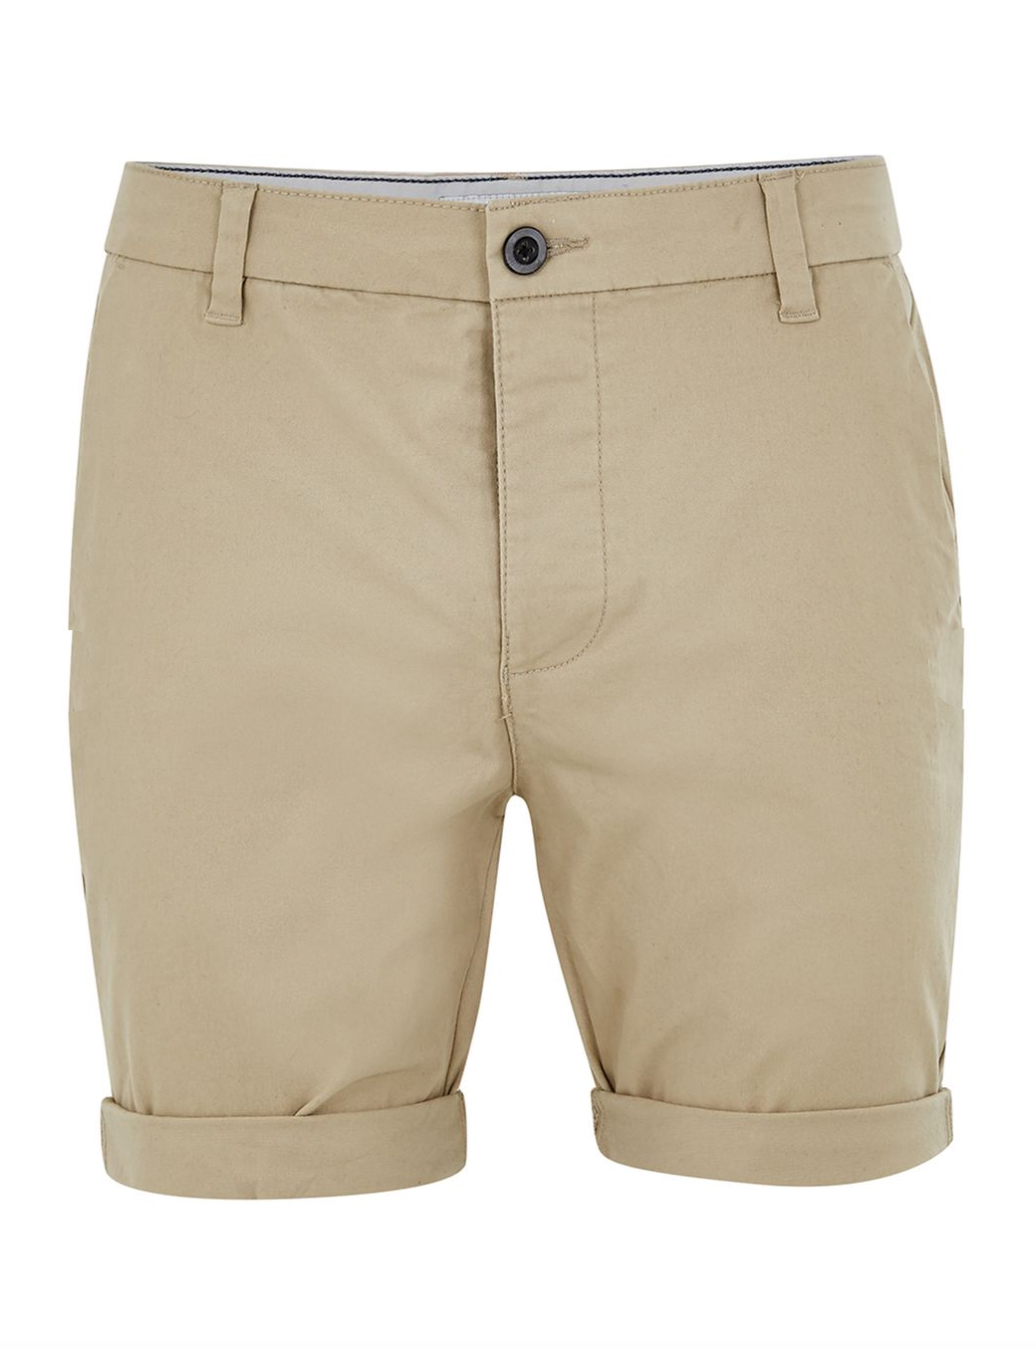 Stone Stretch Skinny Chino Shorts - ($40)